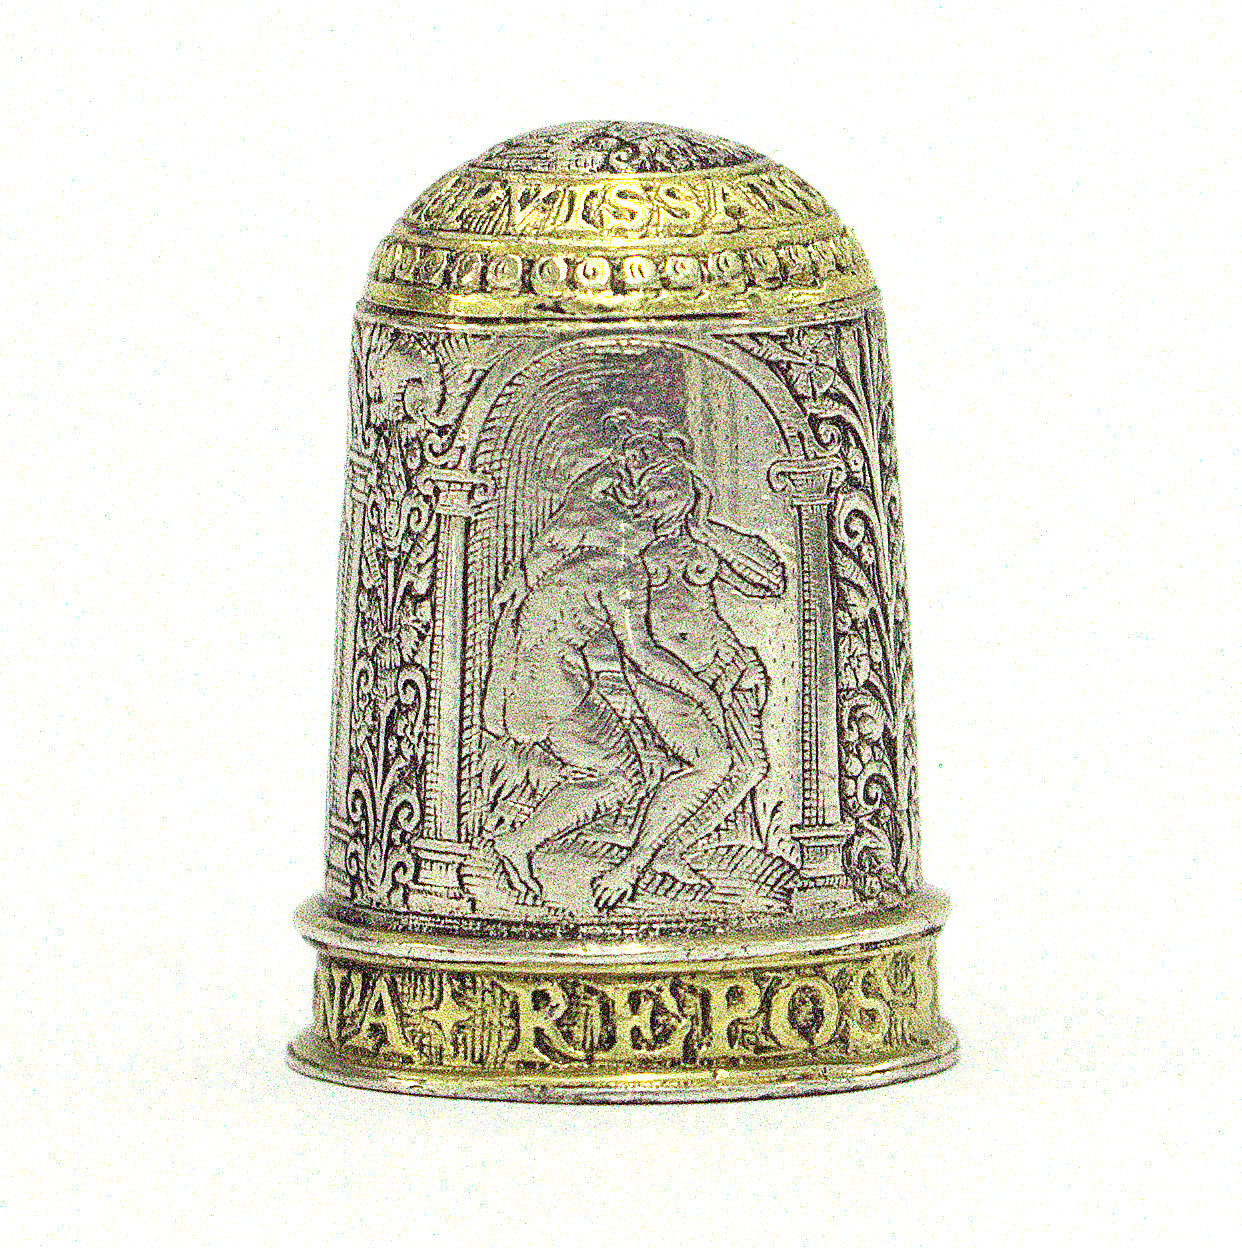 Silver thimble, English, c.1600. M.362-1940